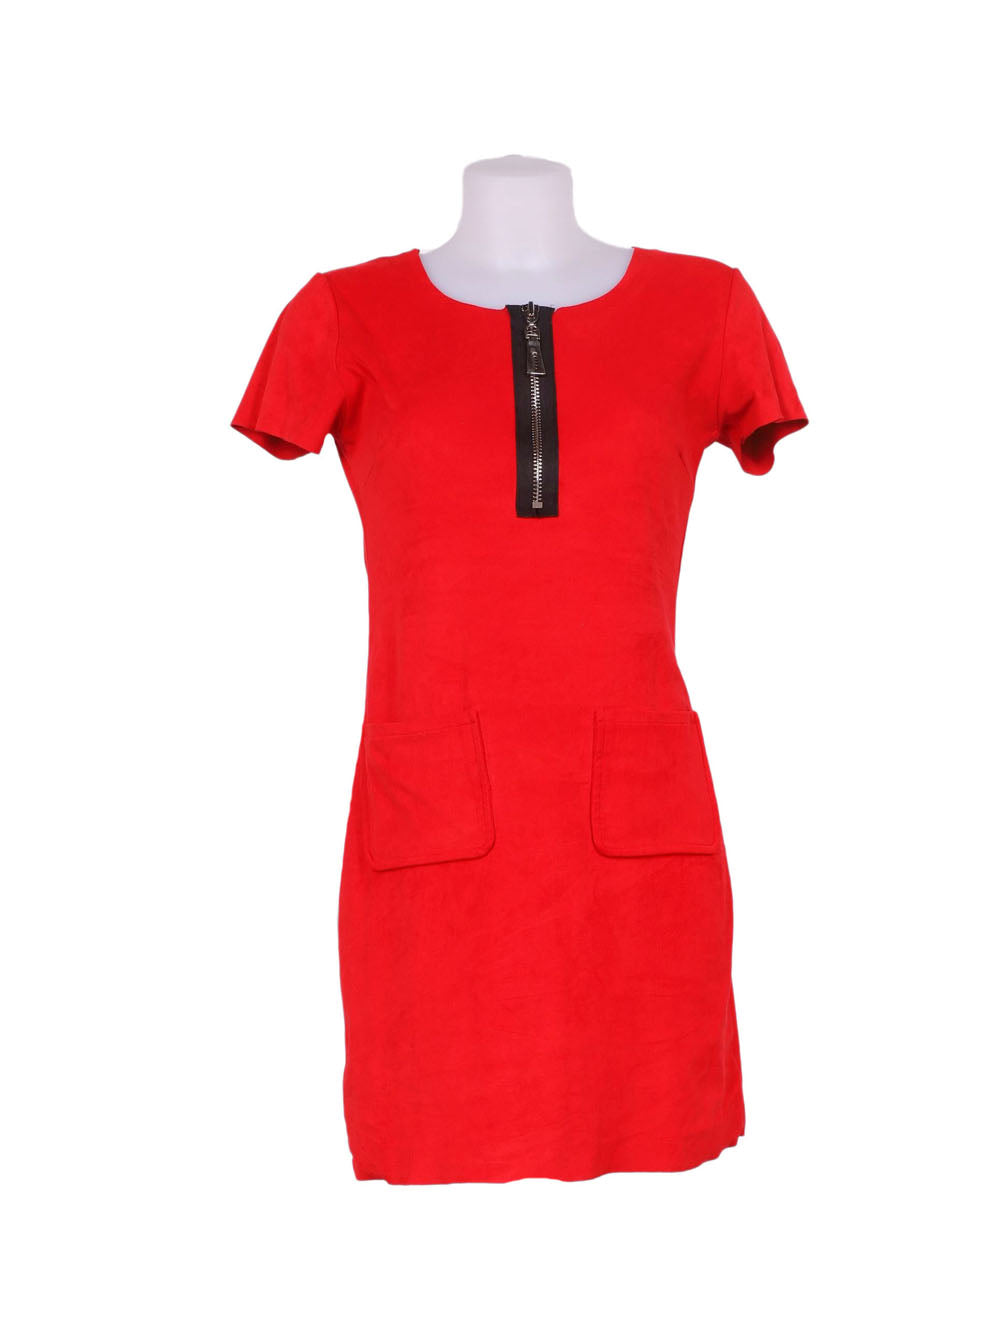 Front photo of Preloved nana baila Red Woman's dress - size 8/S